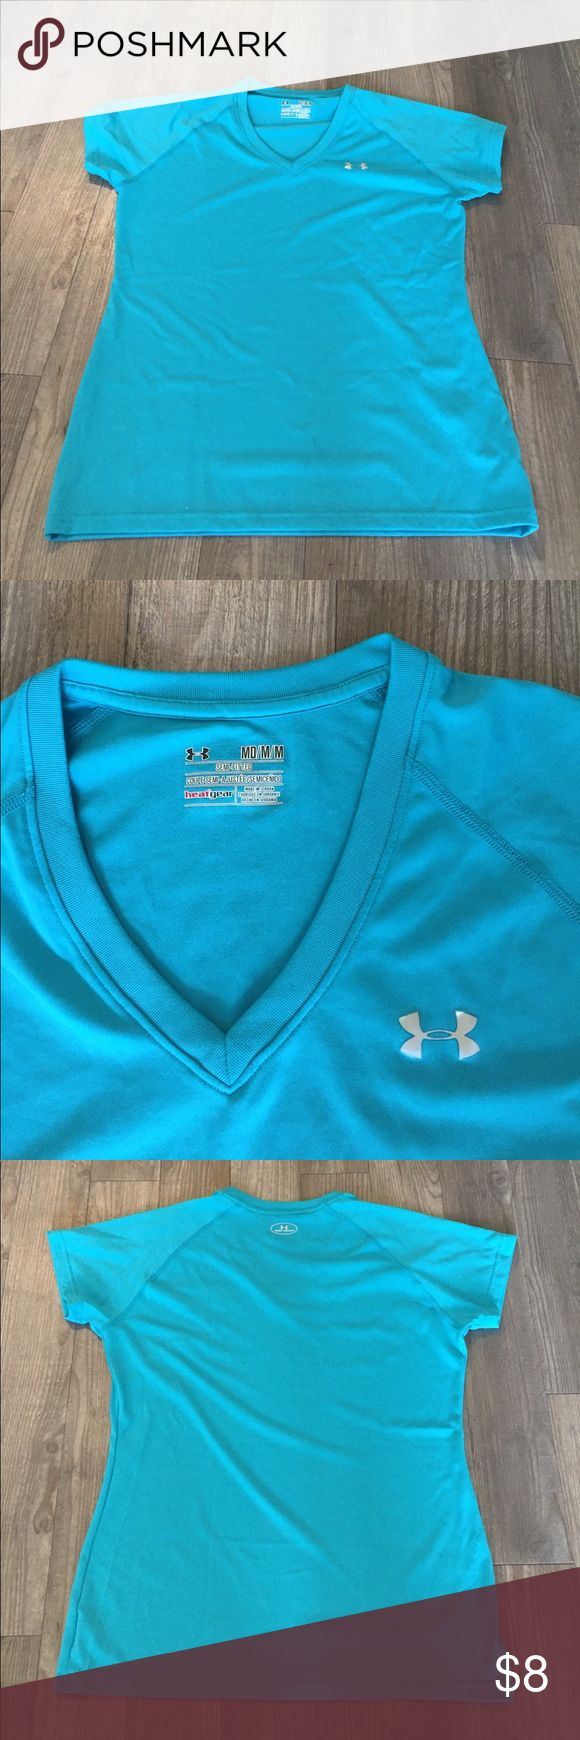 Under Armoir DRI fit tee Under Armour Dri Fit T shirt worn only a couple of times! Under Armour Tops Tees - Short Sleeve